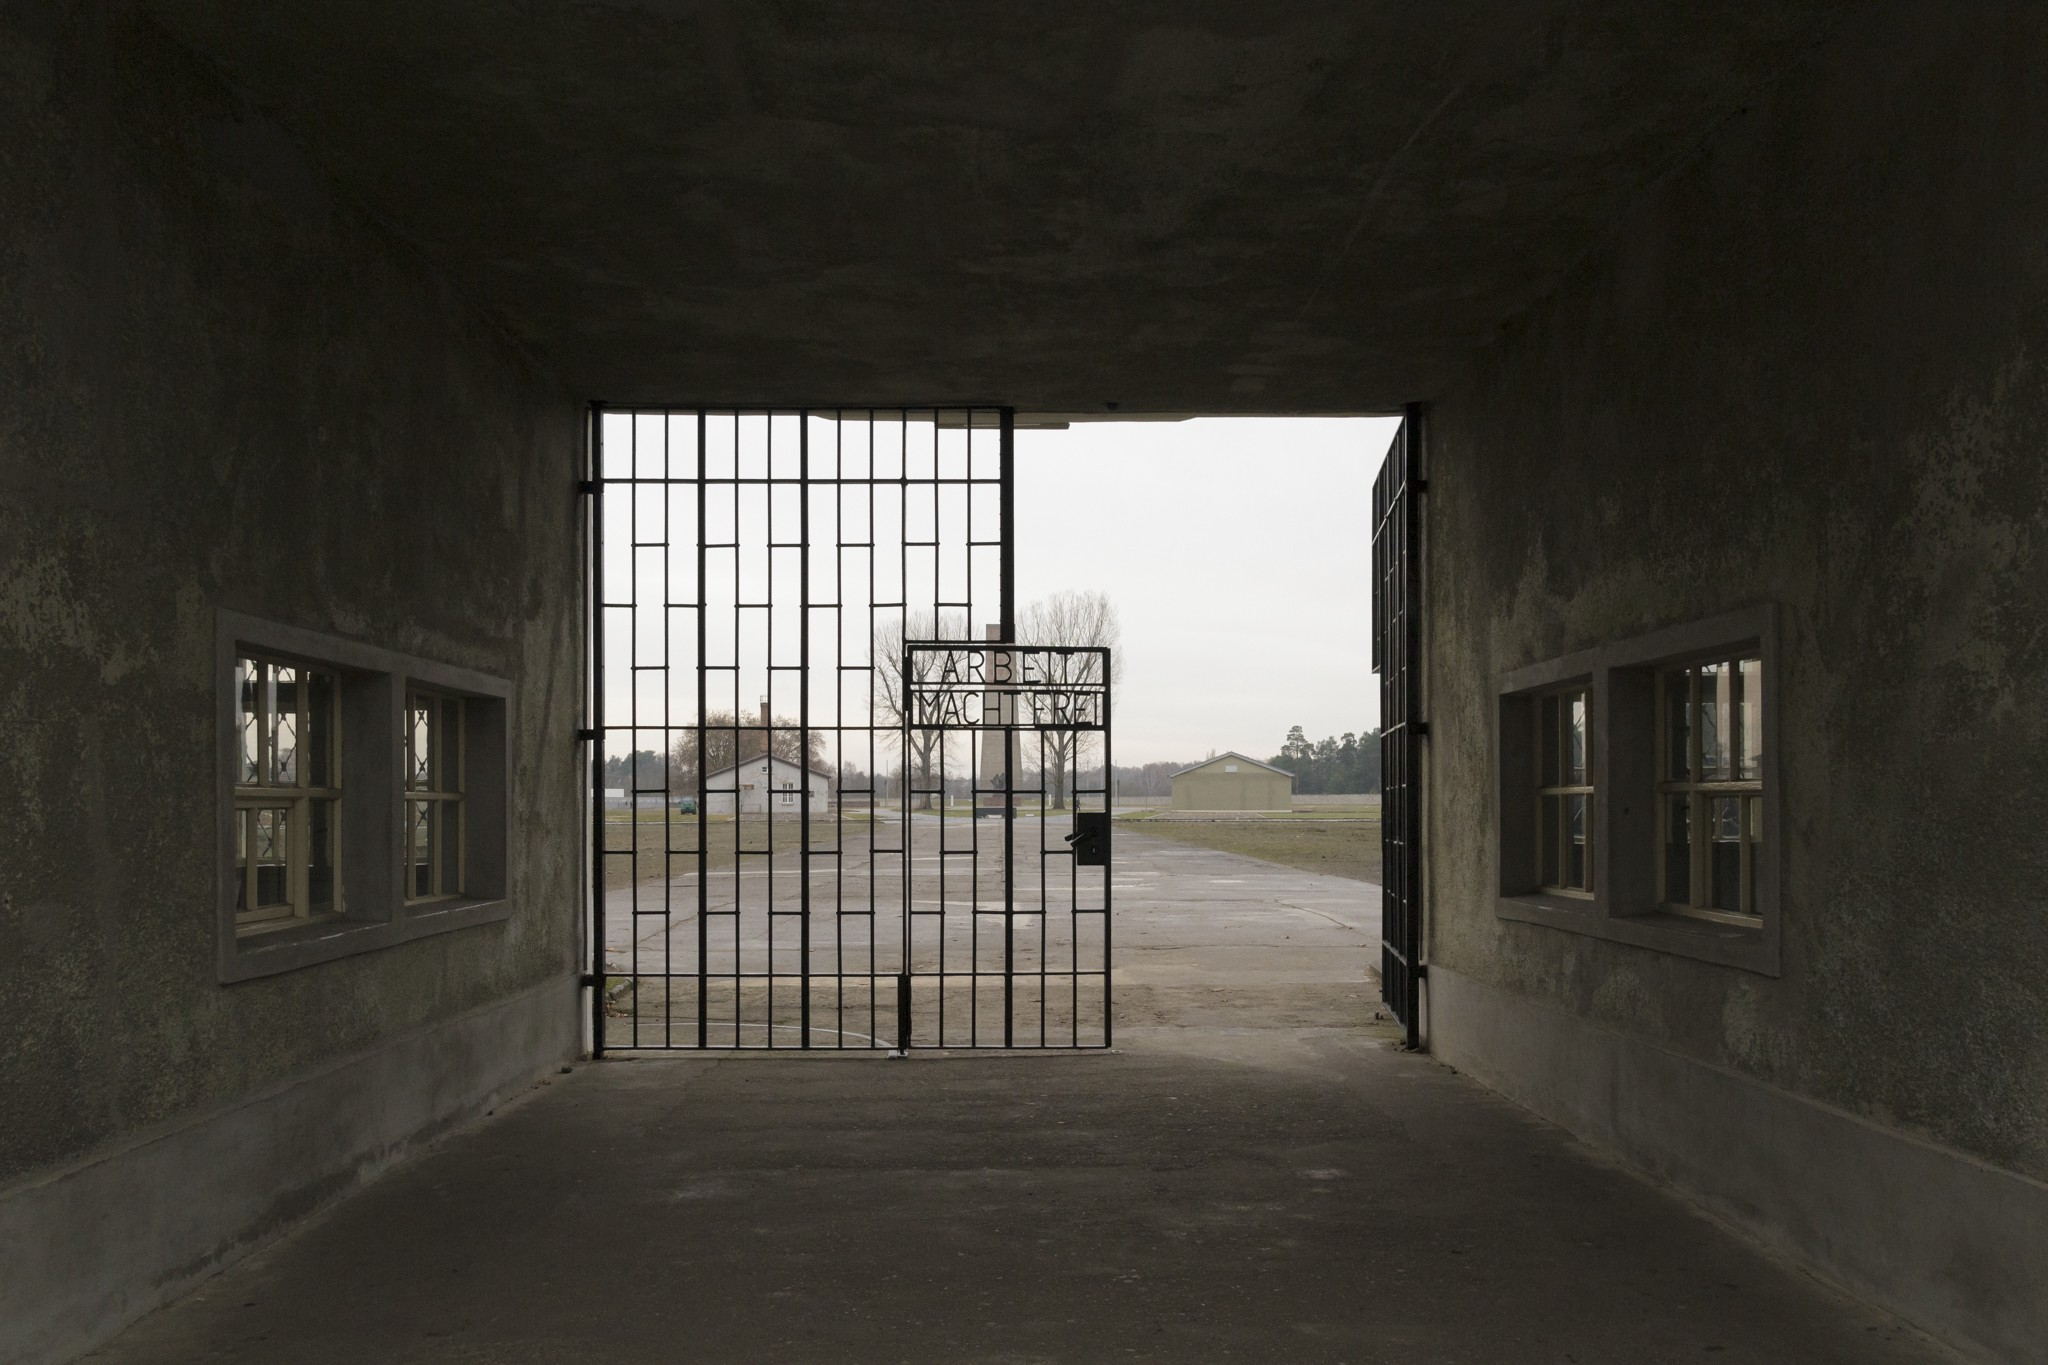 The entrance gate to Sachsenhausen